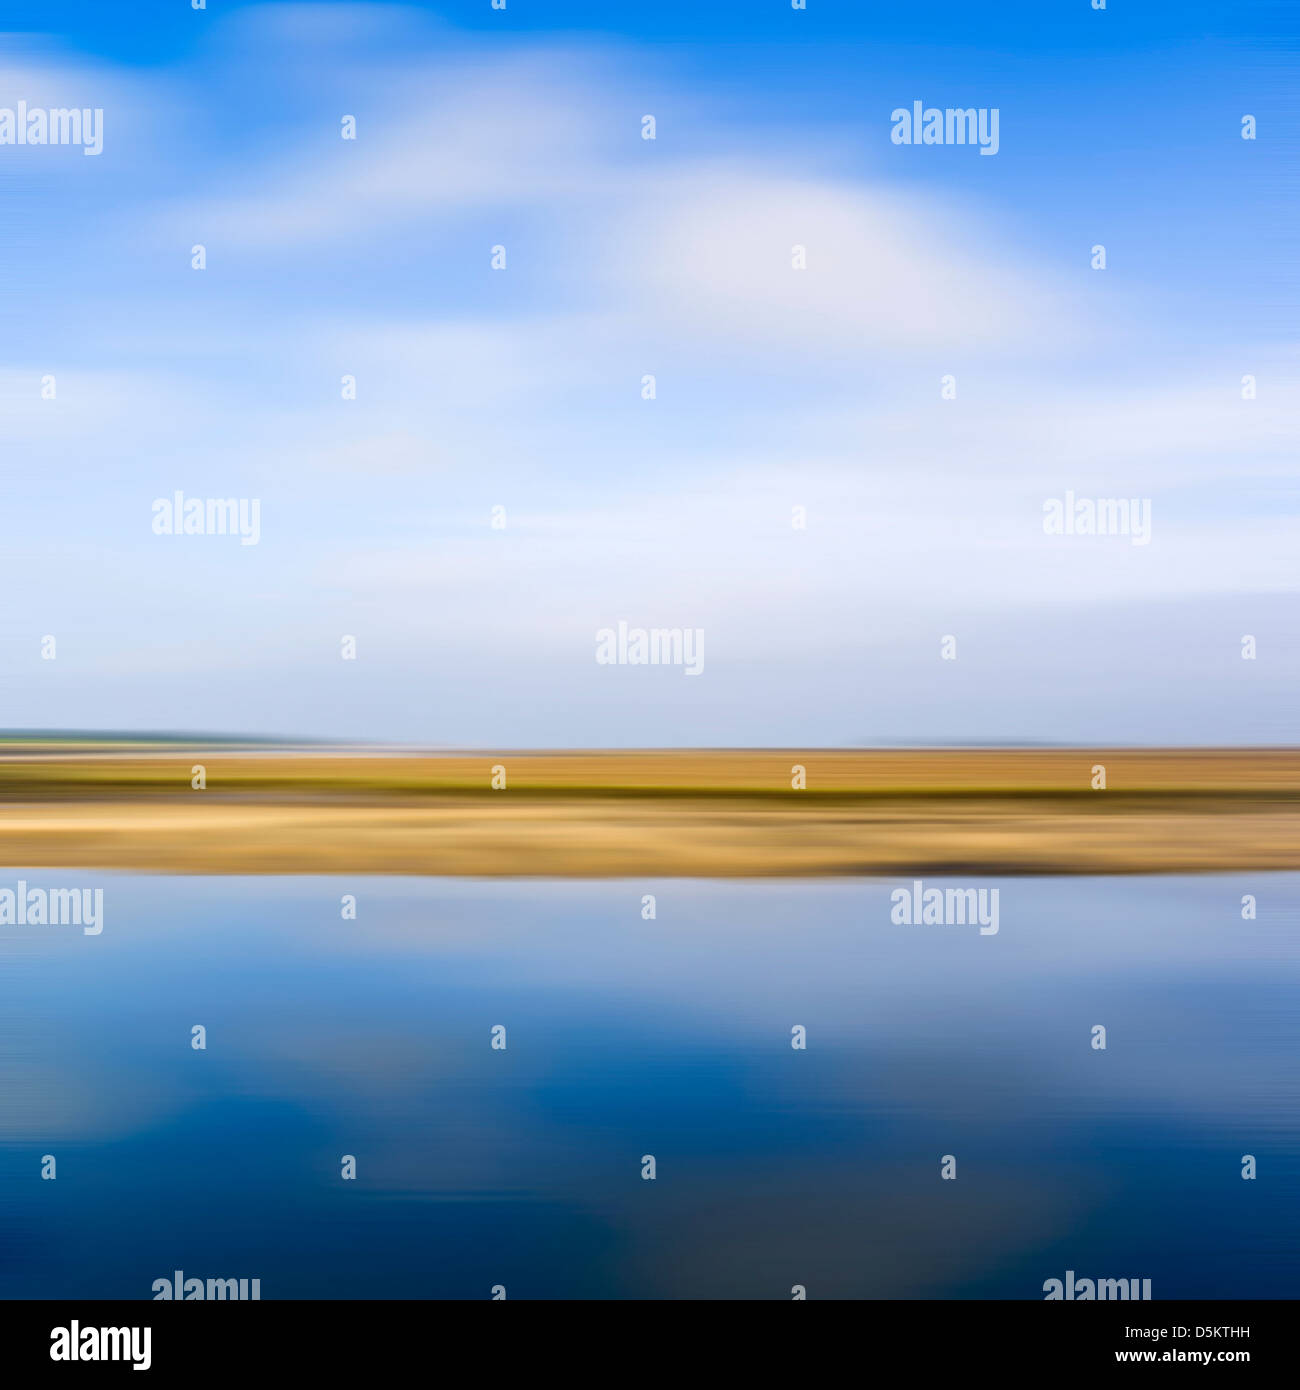 Blurred abstract image of saltmarshes on the North Norfolk coast. Stock Photo